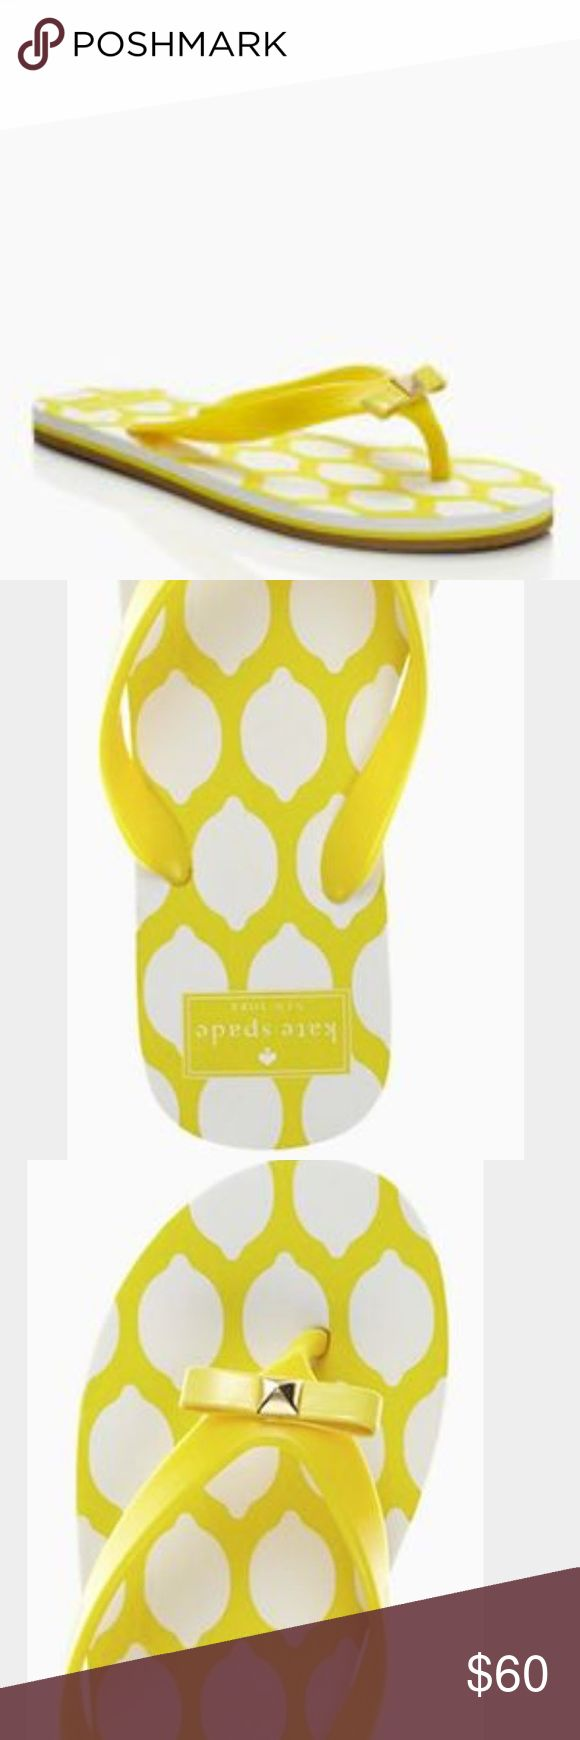 Kate Spade Yellow Flip Flops Kate Spade New in Box Flip Flops. So cute! Size 8 Bundle and Save 10%!    Top Rated Seller ⭐️⭐️⭐️⭐️⭐️ Same or Next Day Shipping!  kate spade Shoes Sandals